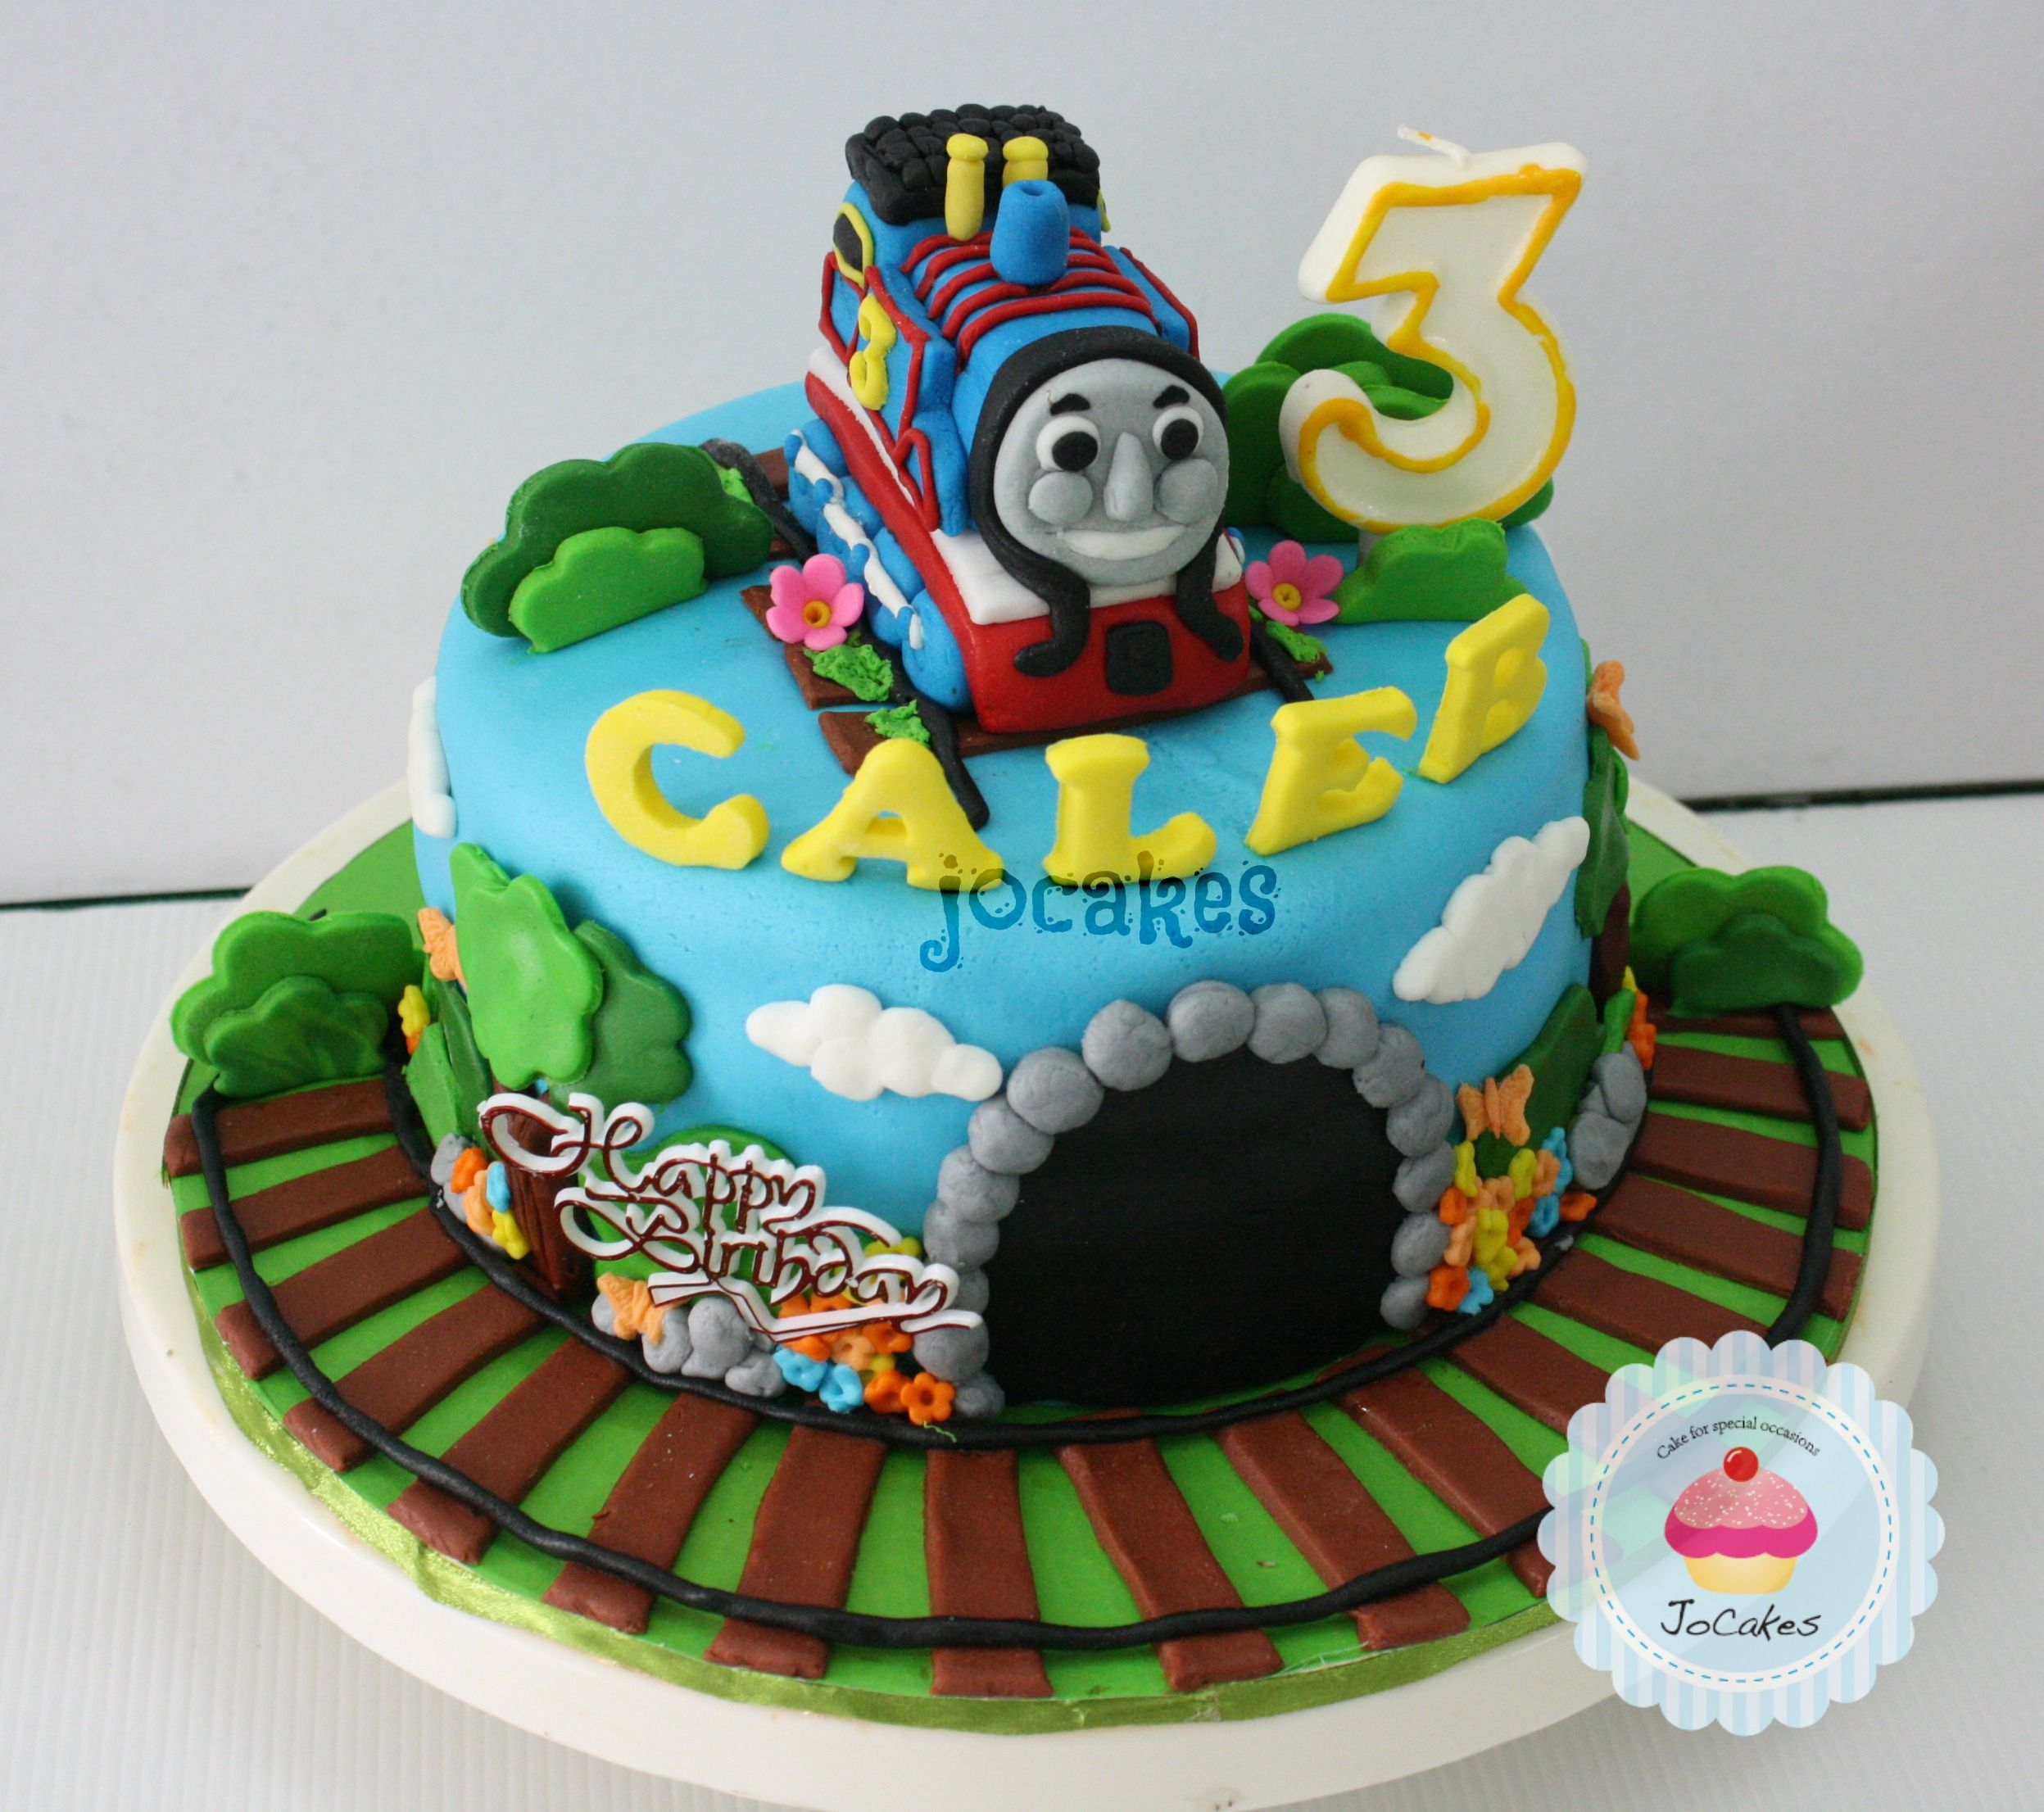 Thomas The Train Cake For Caleb Jocakes Party With